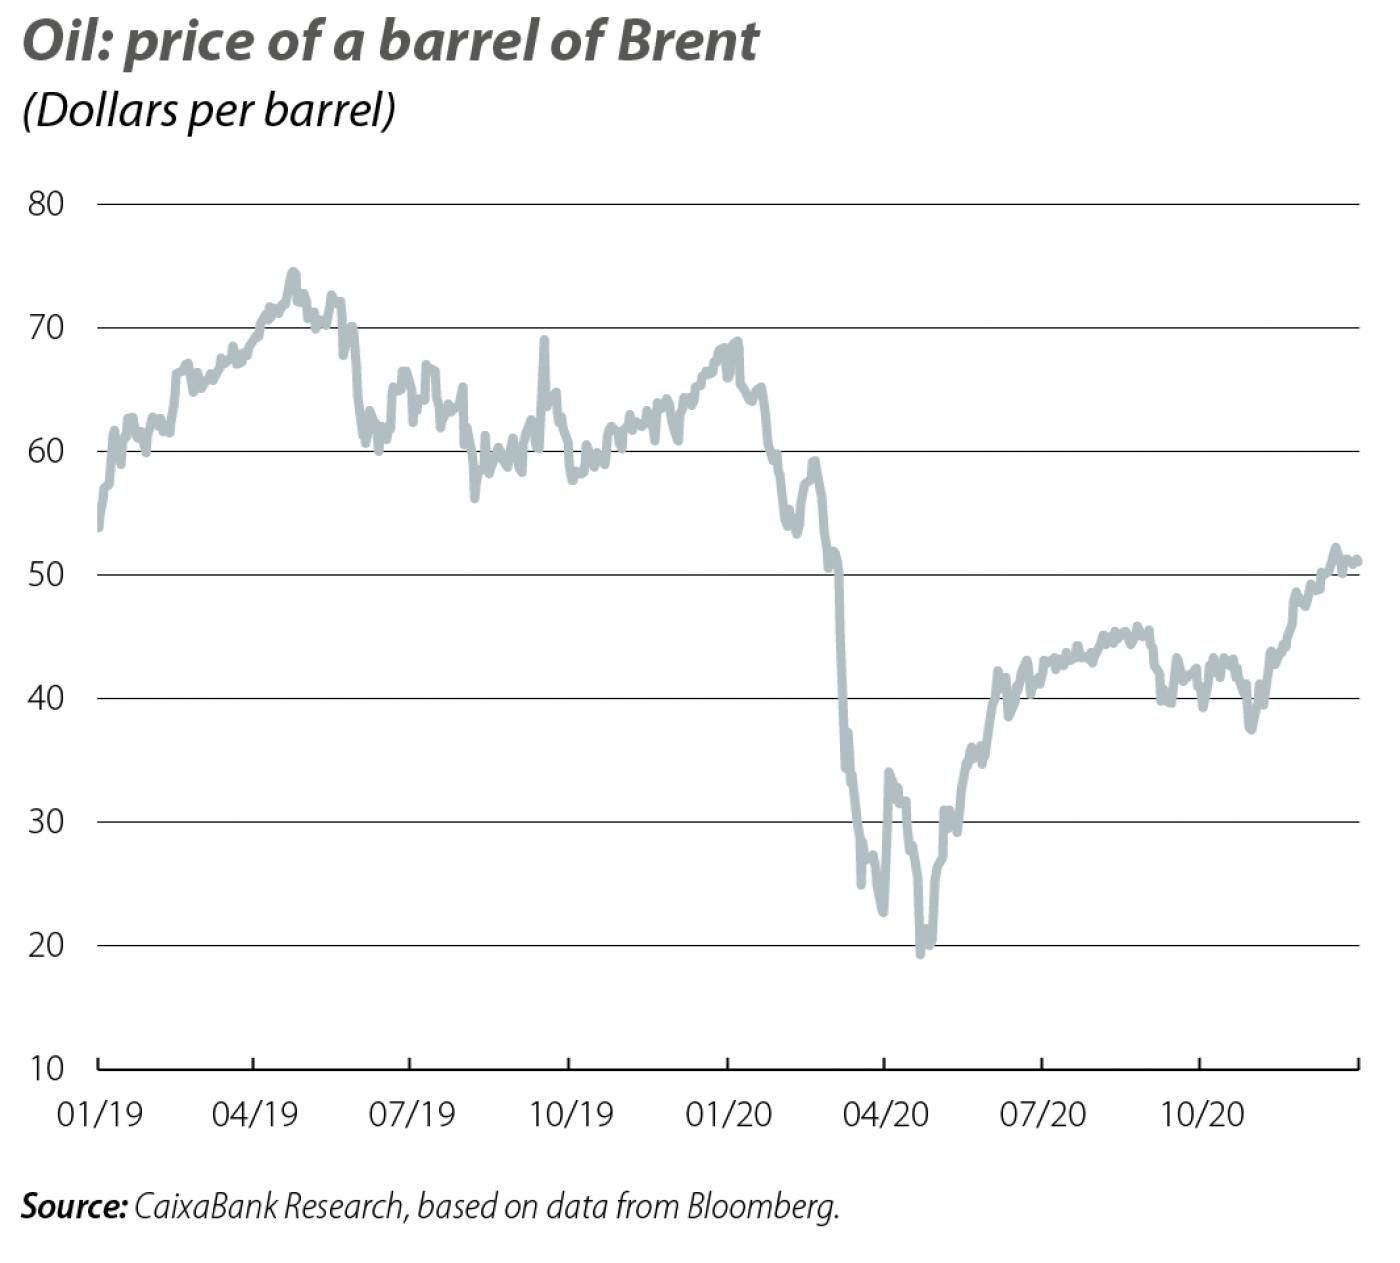 Oil: price of a barrel of Brent